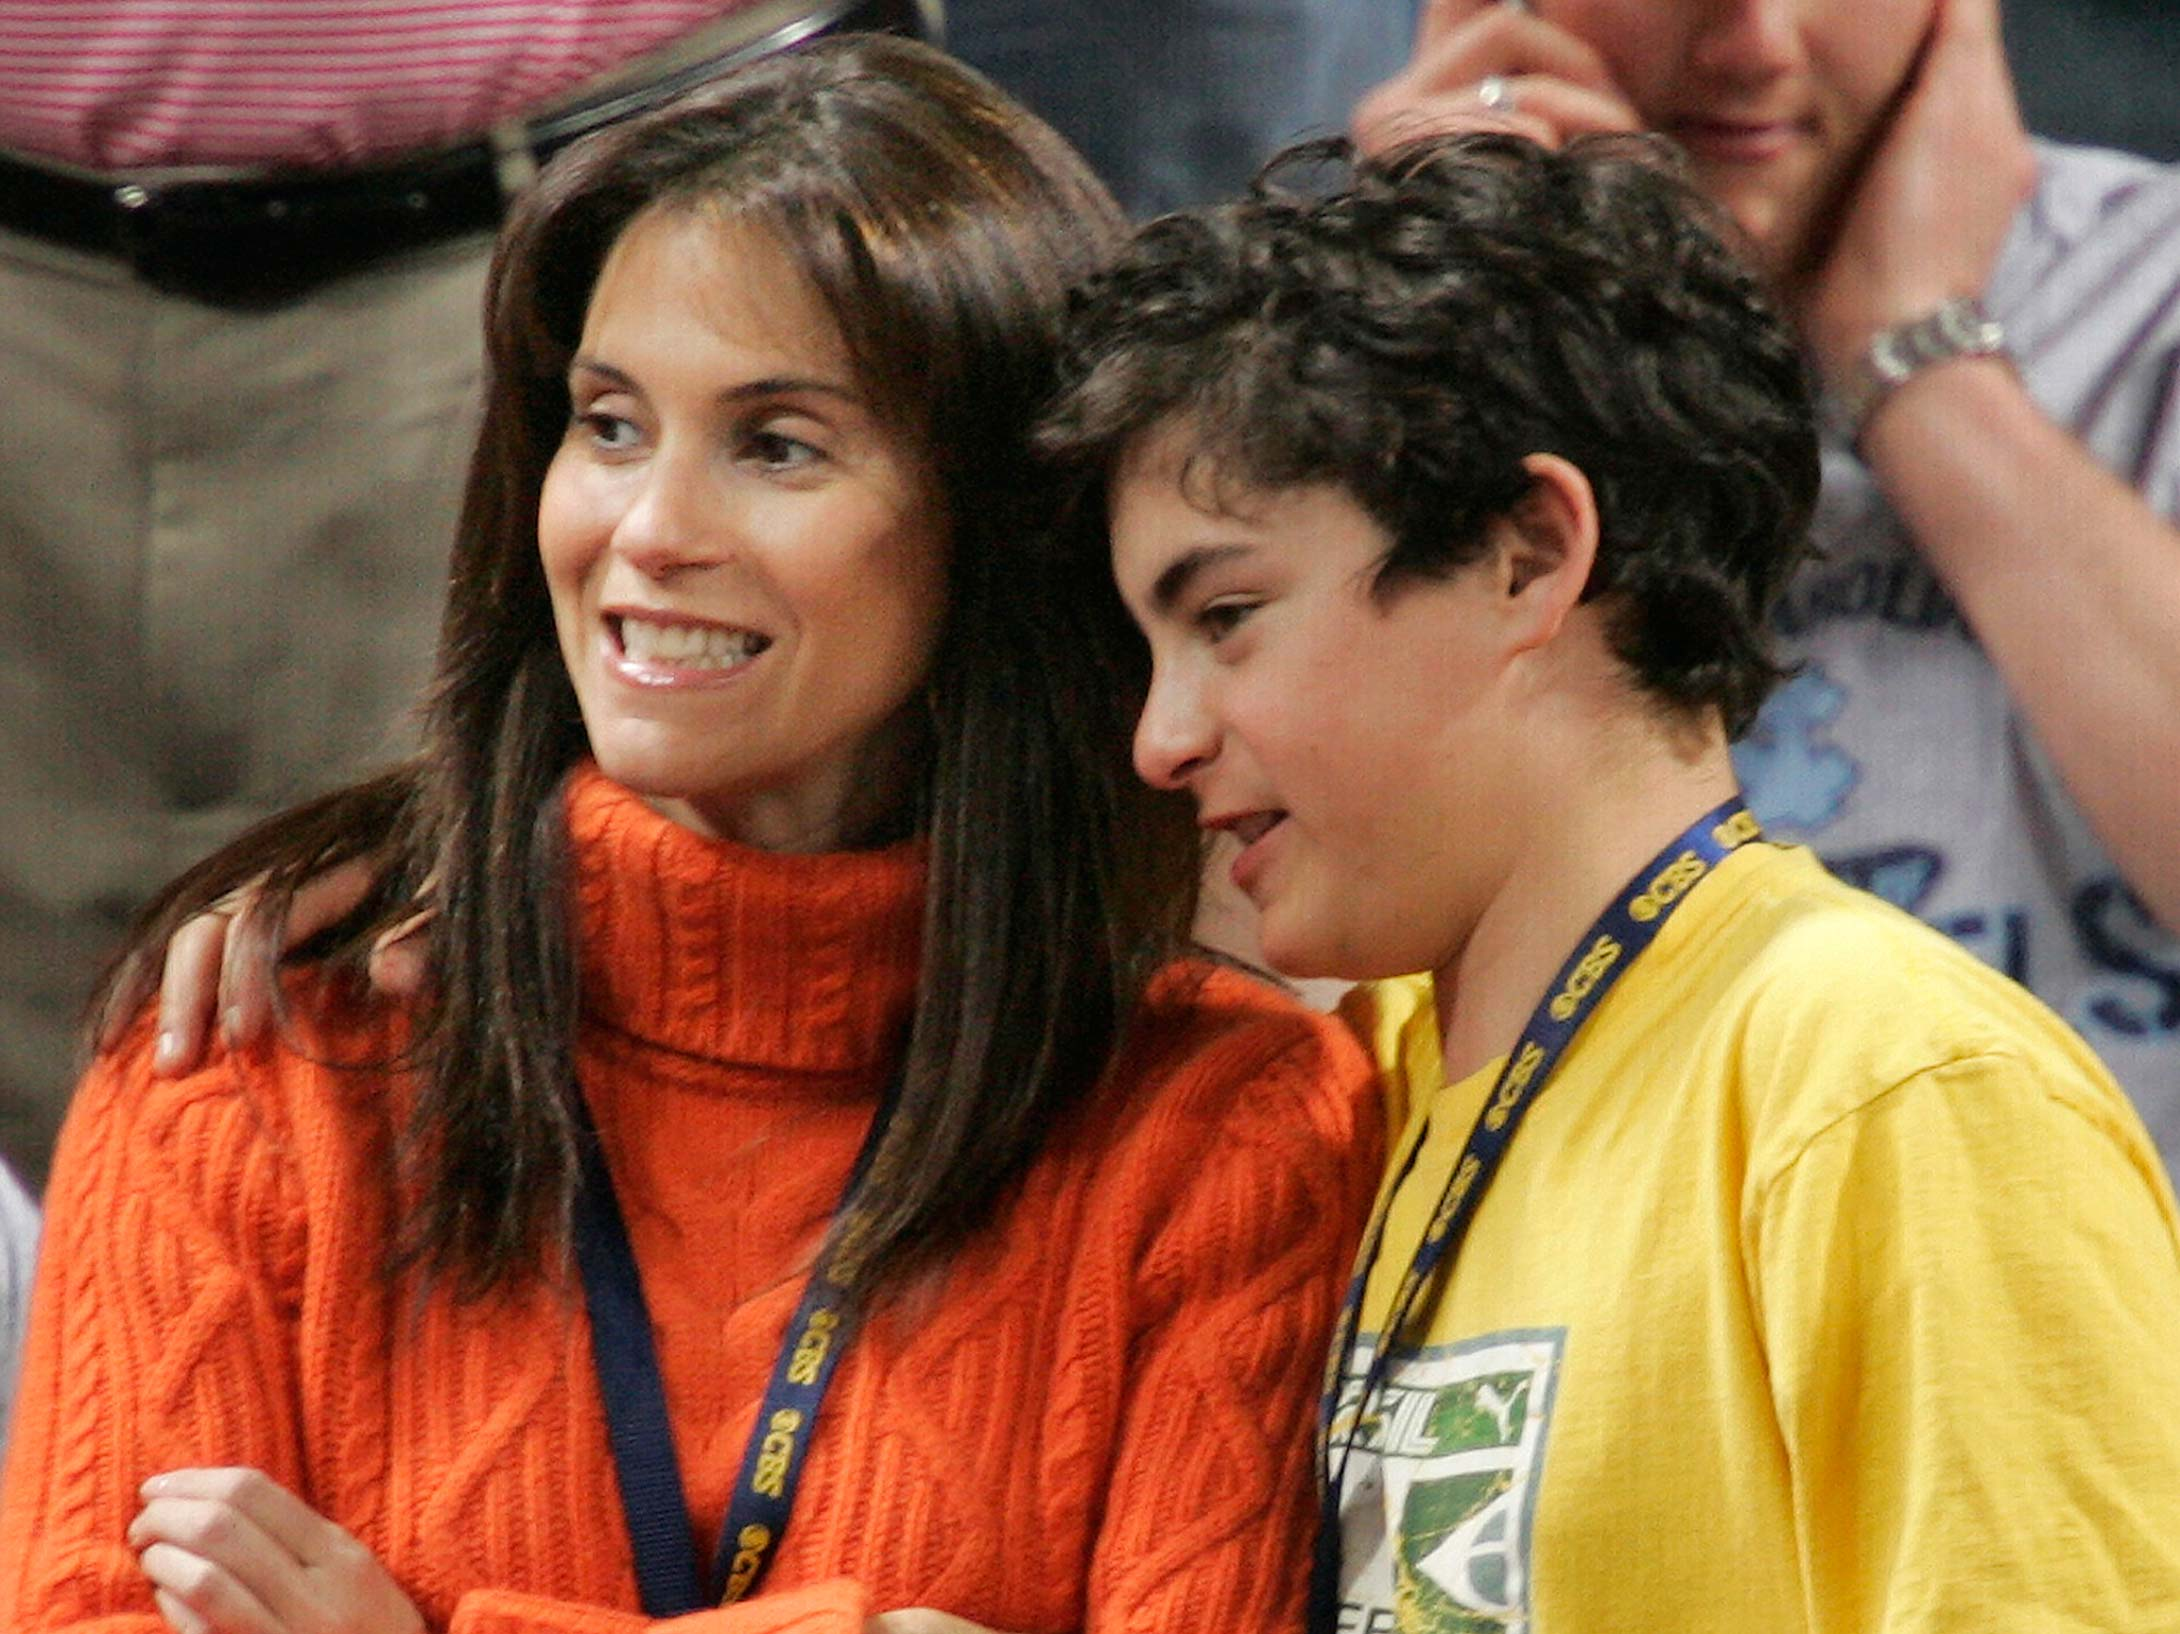 Actress Jami Gertz watches the 2005 Illinois/Louisville national semifinal with one of her sons at the Edward Jones Dome in St. Louis.